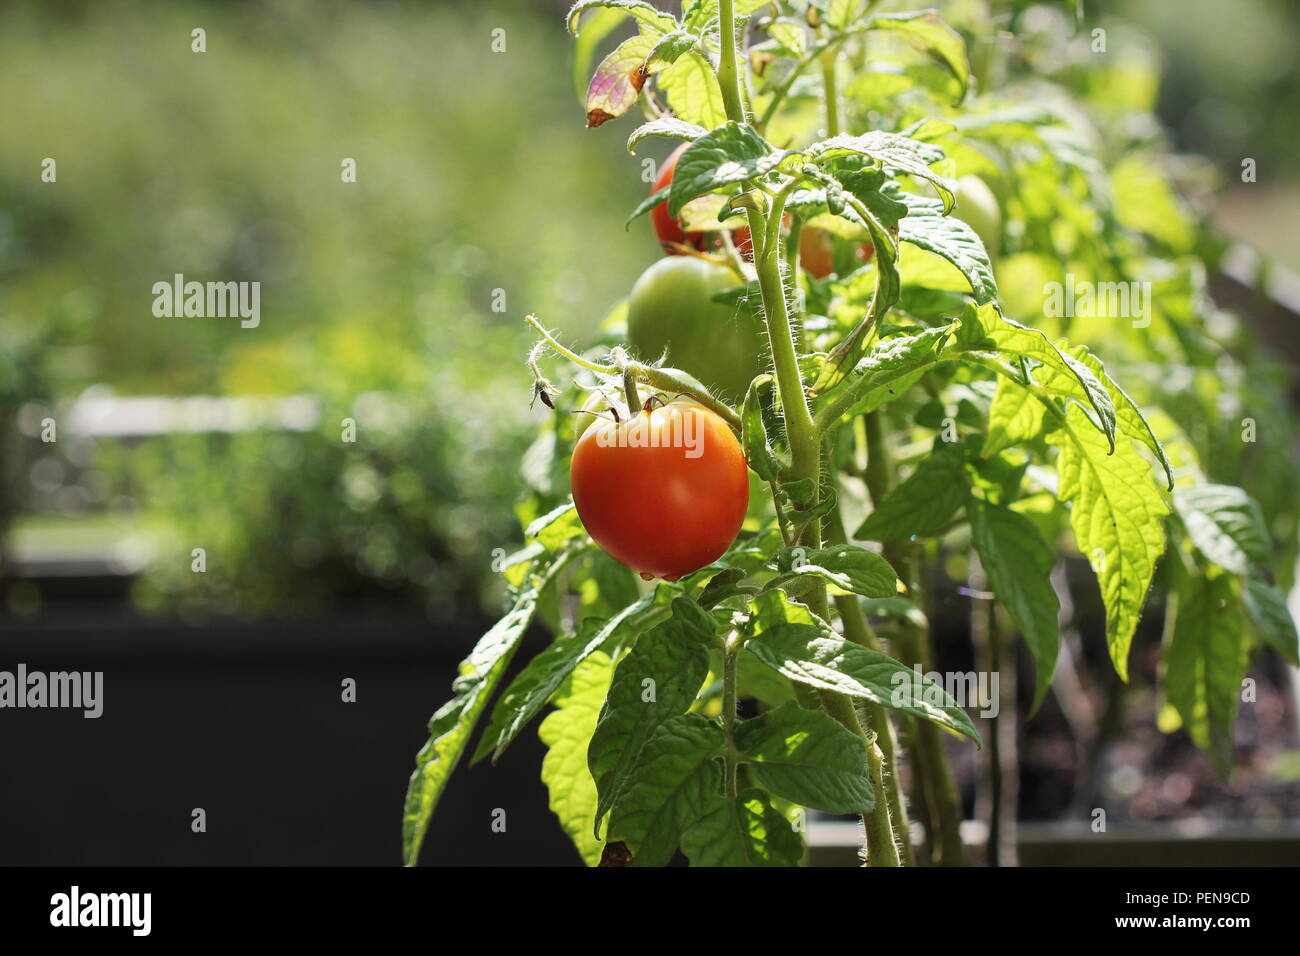 Tomato Wuppertal Urban Gardening Balcony Stock Photos Urban Gardening Balcony